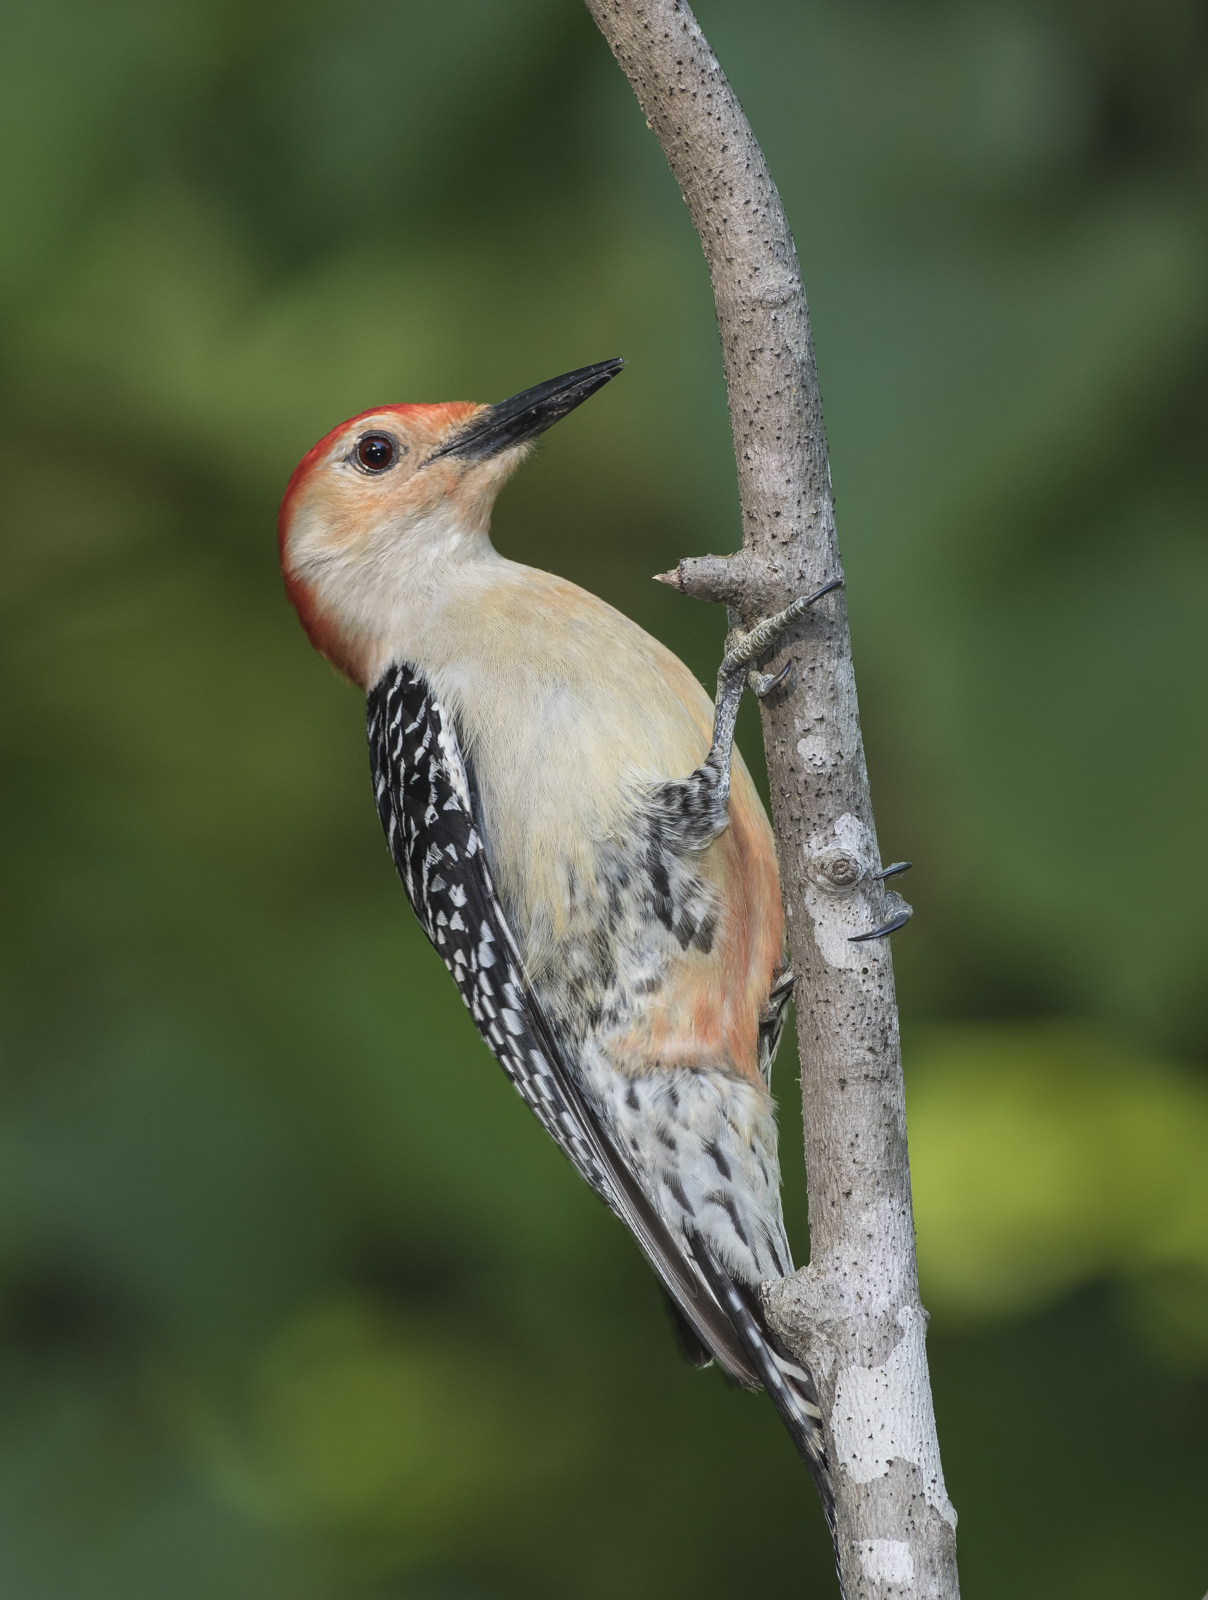 Red-bellied woodpecker male on branch